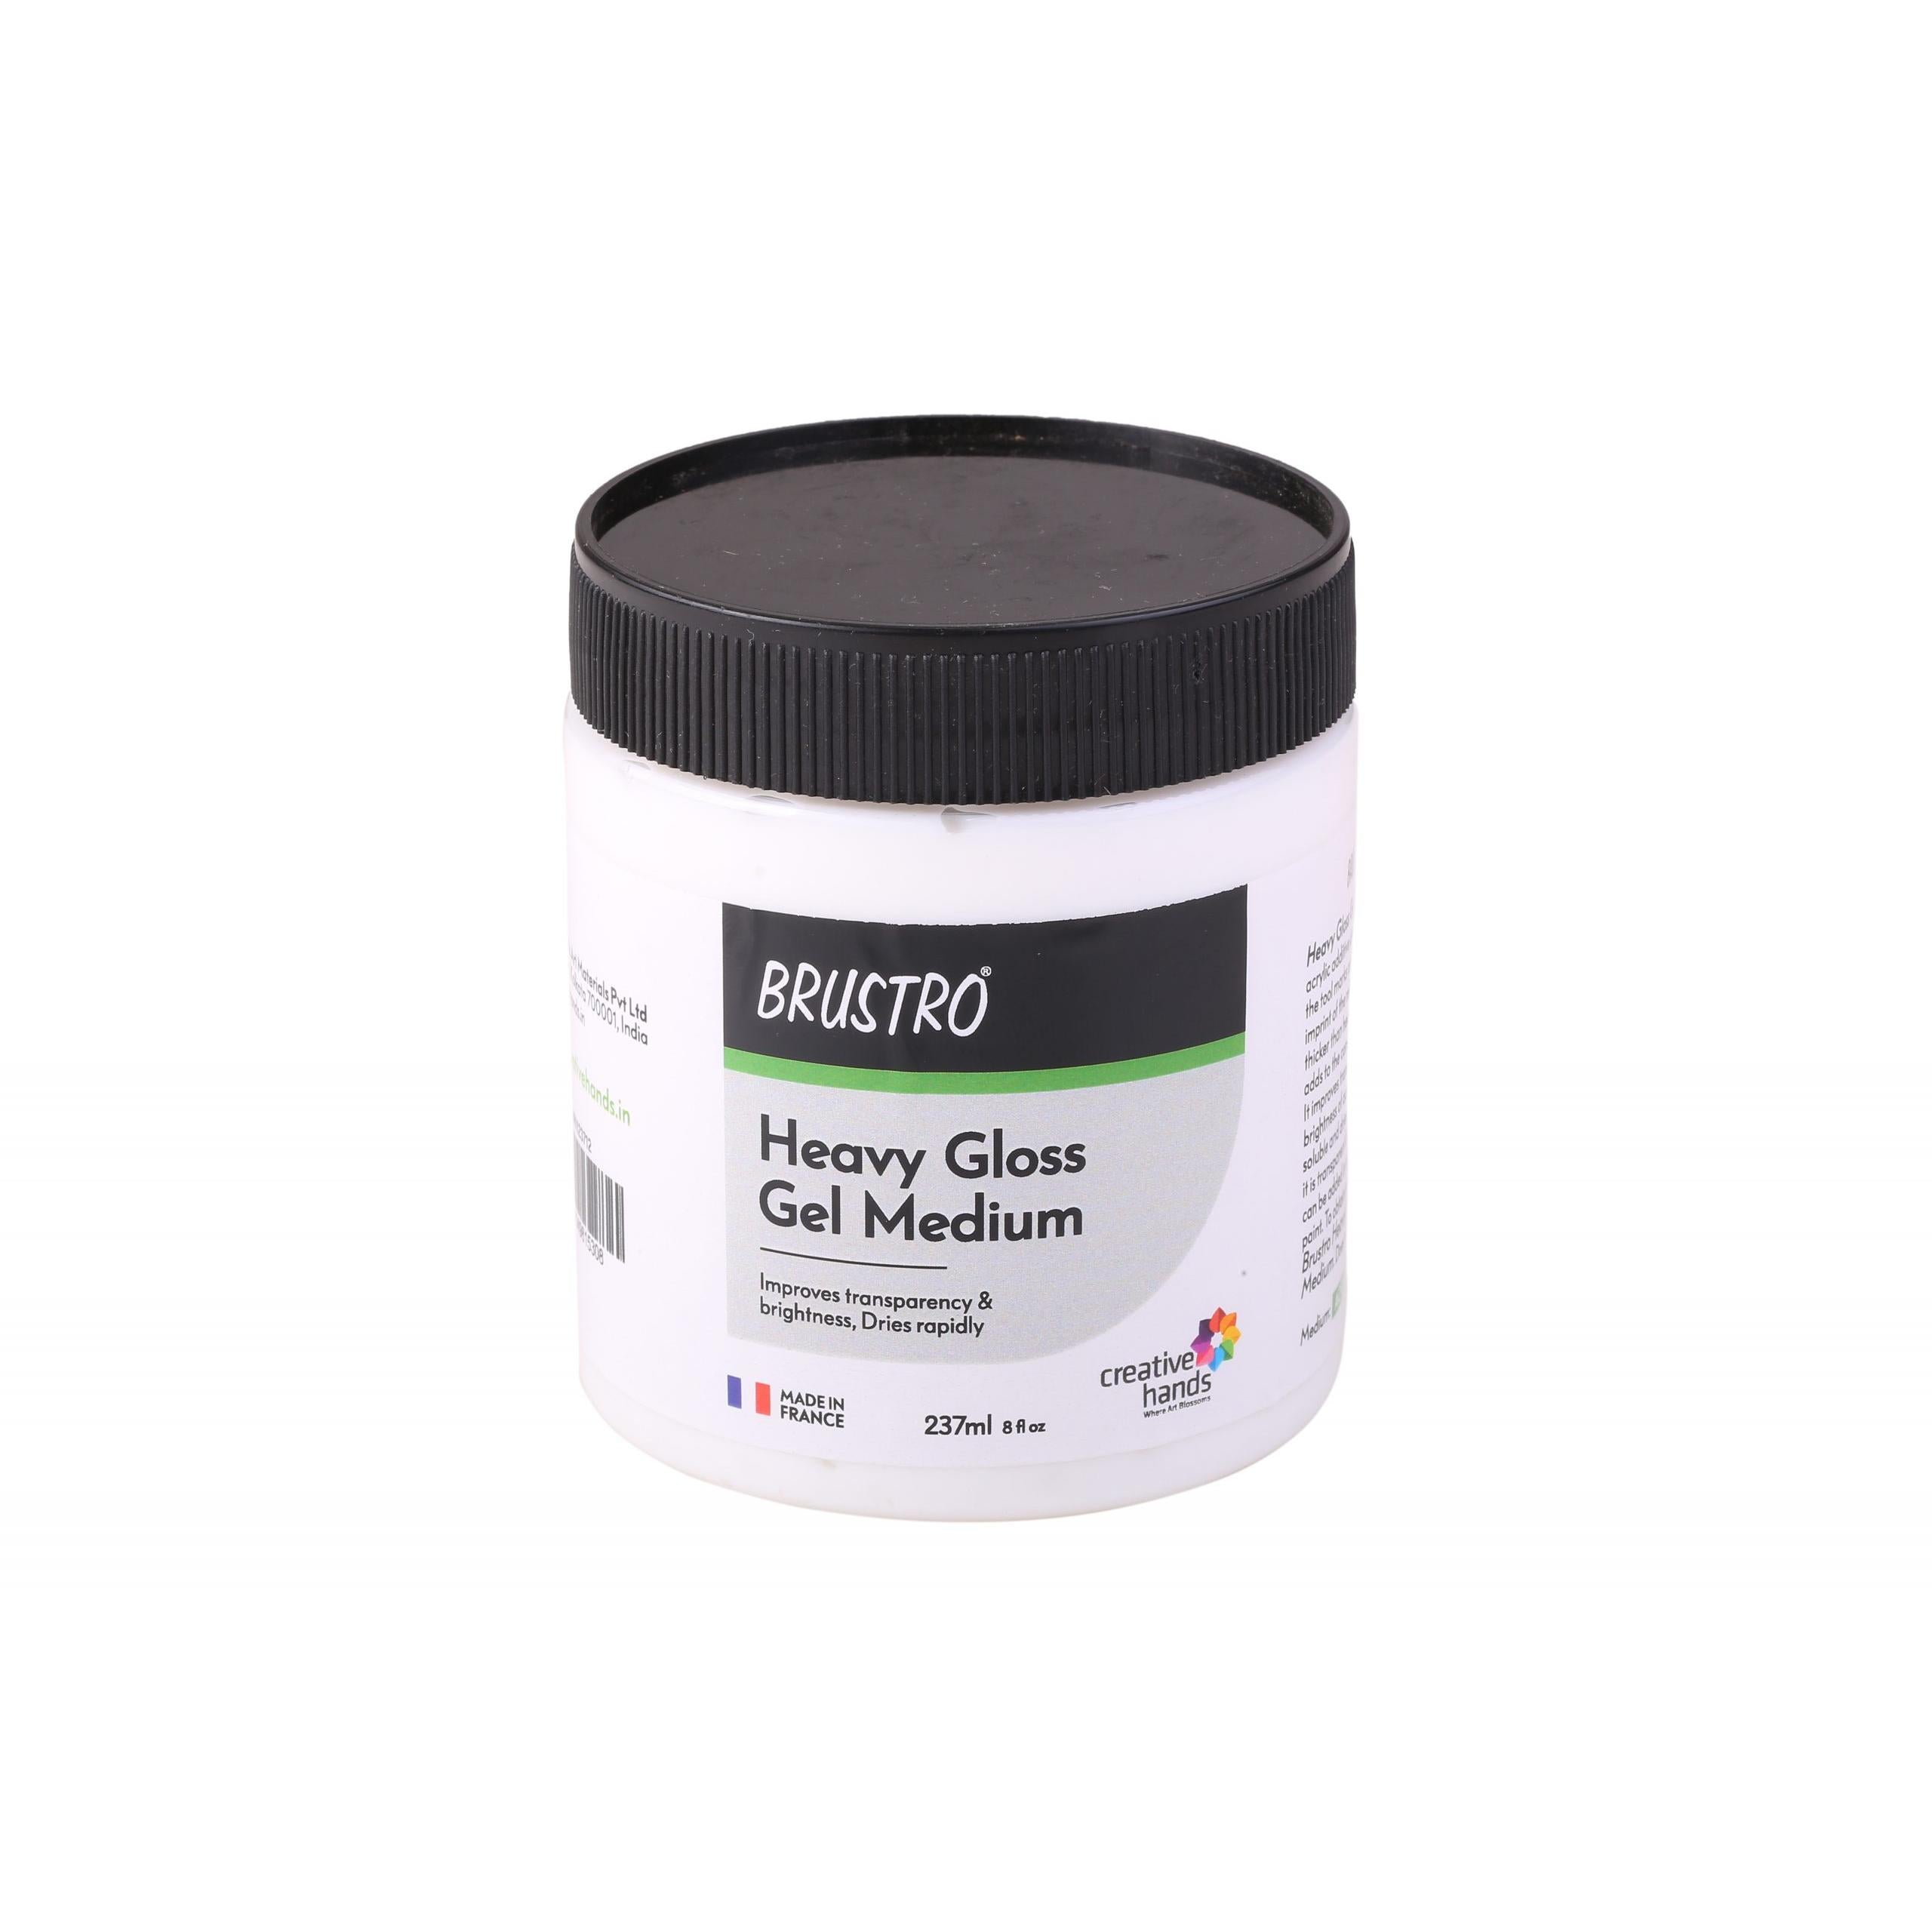 Brustro Professional Heavy Gloss Gel Medium 237ml